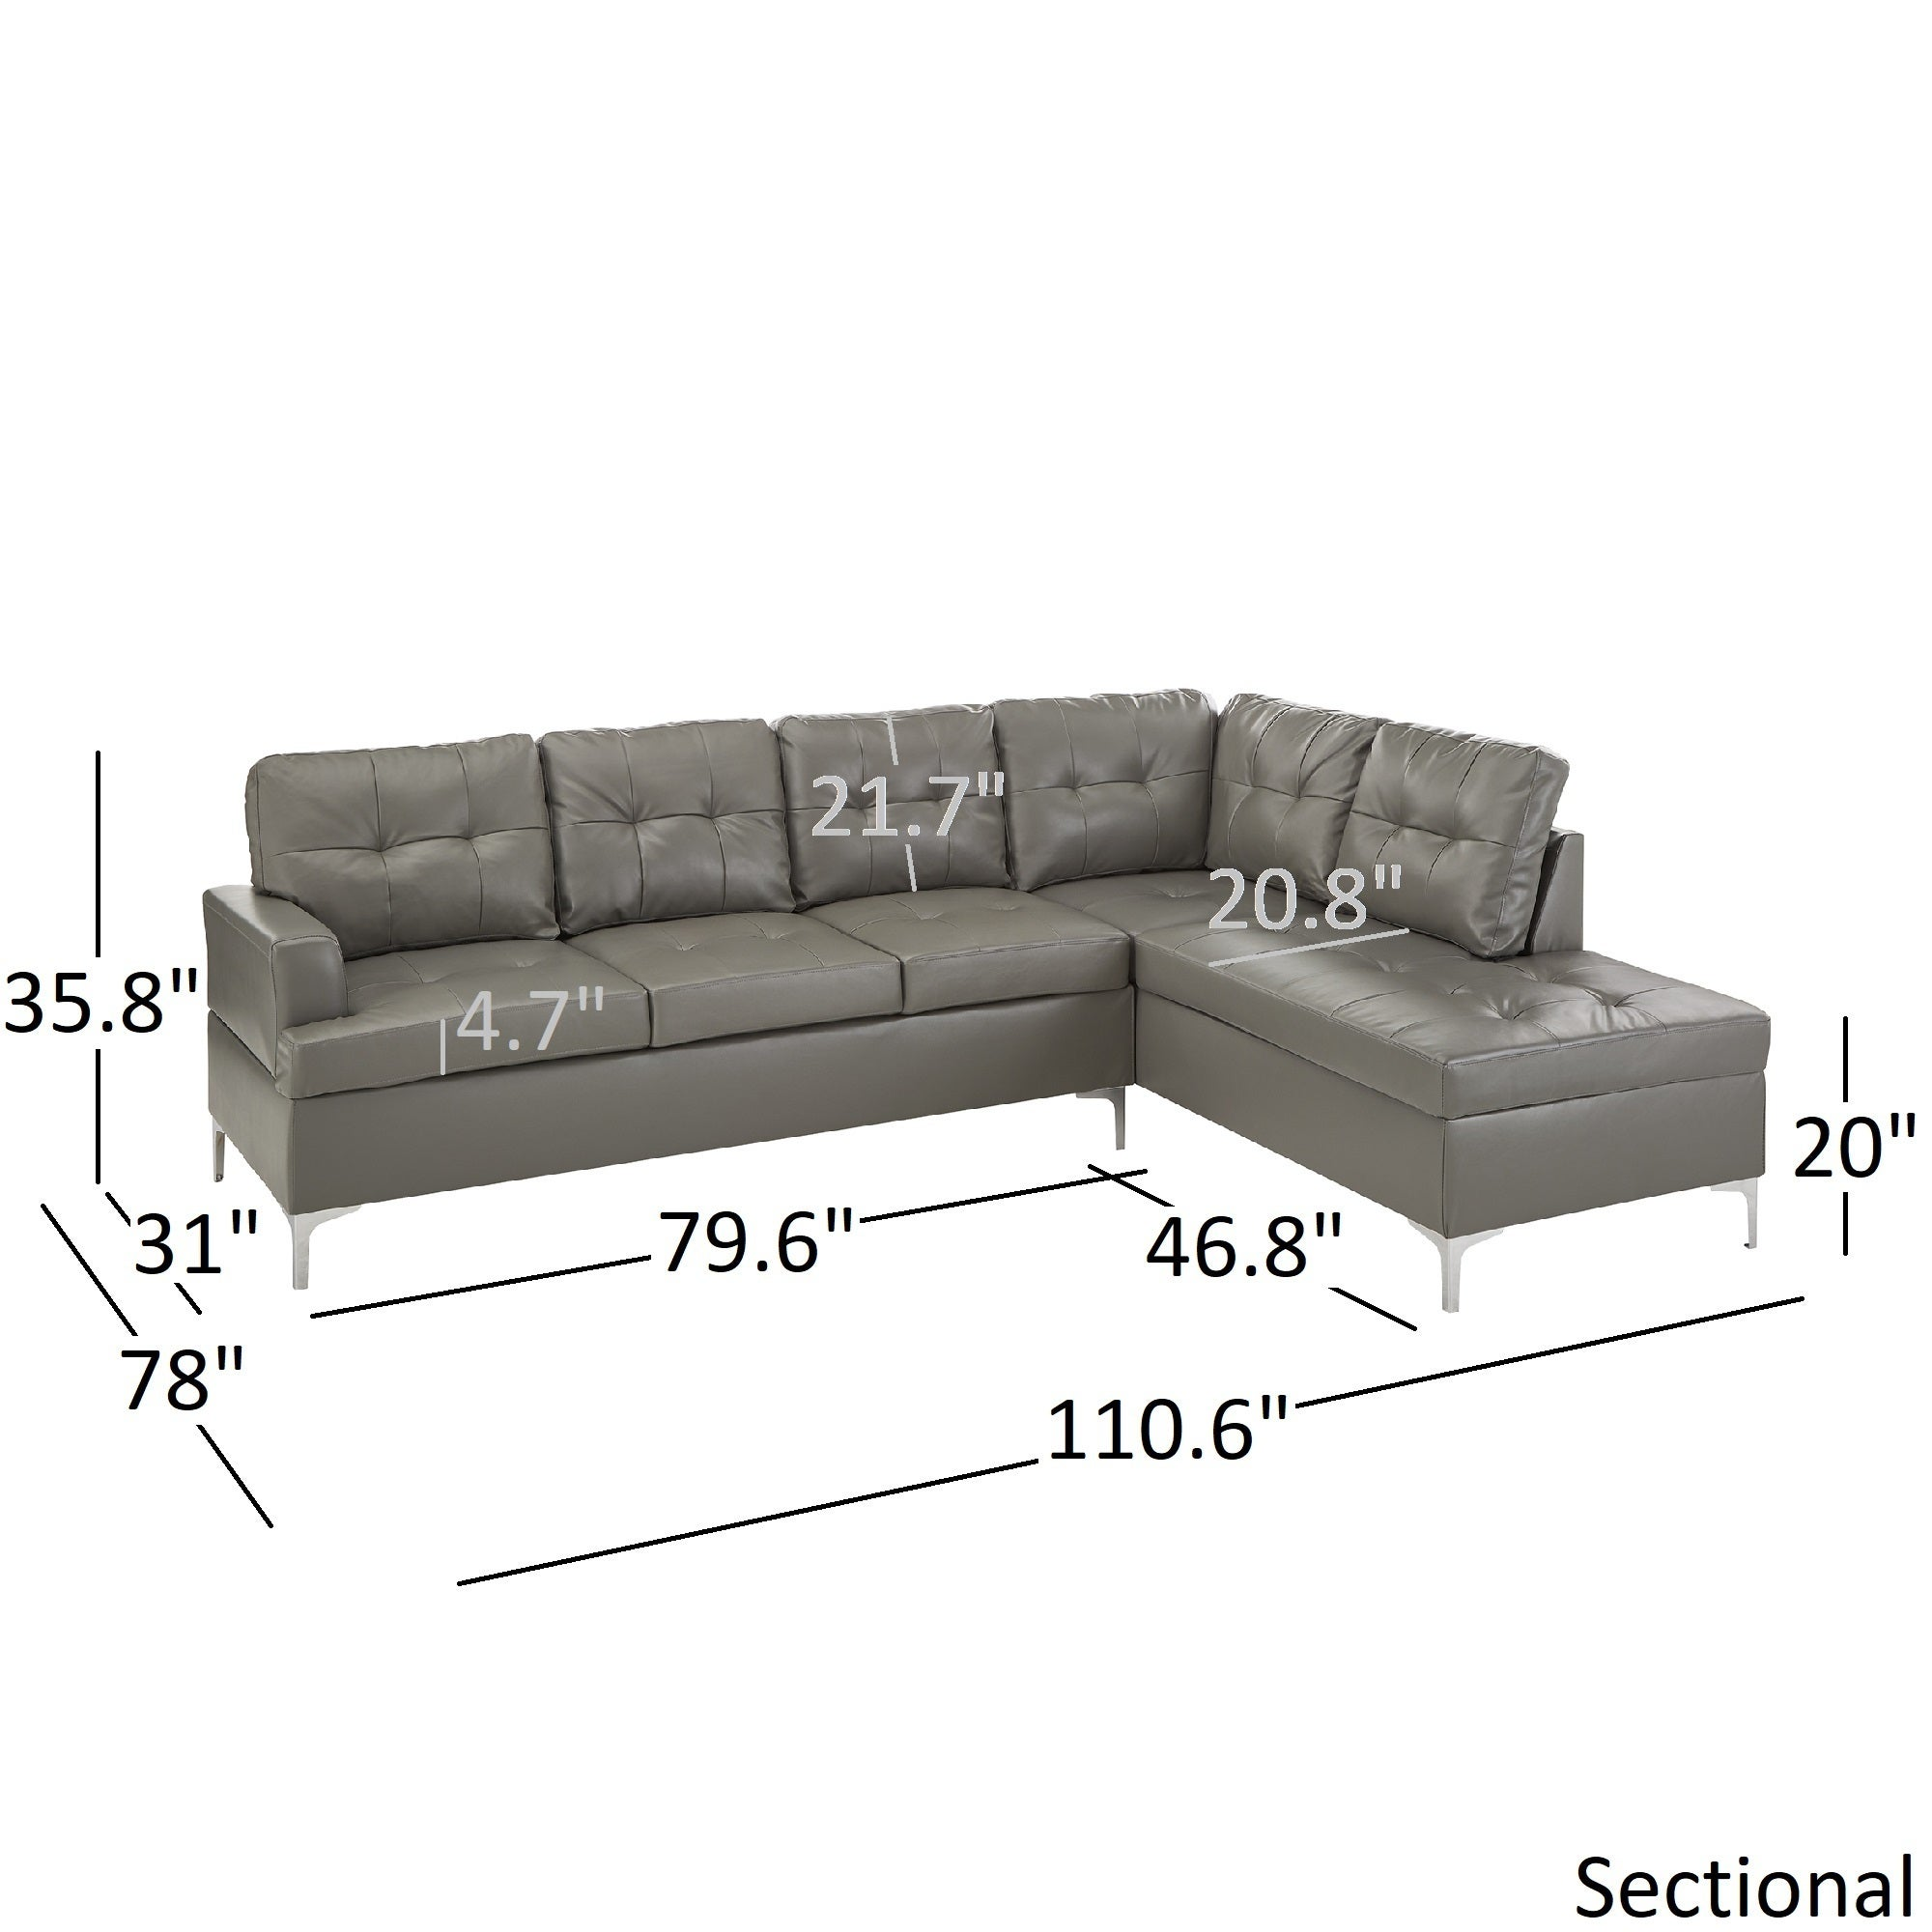 of couch gray blue size leather orange tufted sofas sofa sectional full recliner sleeper brown